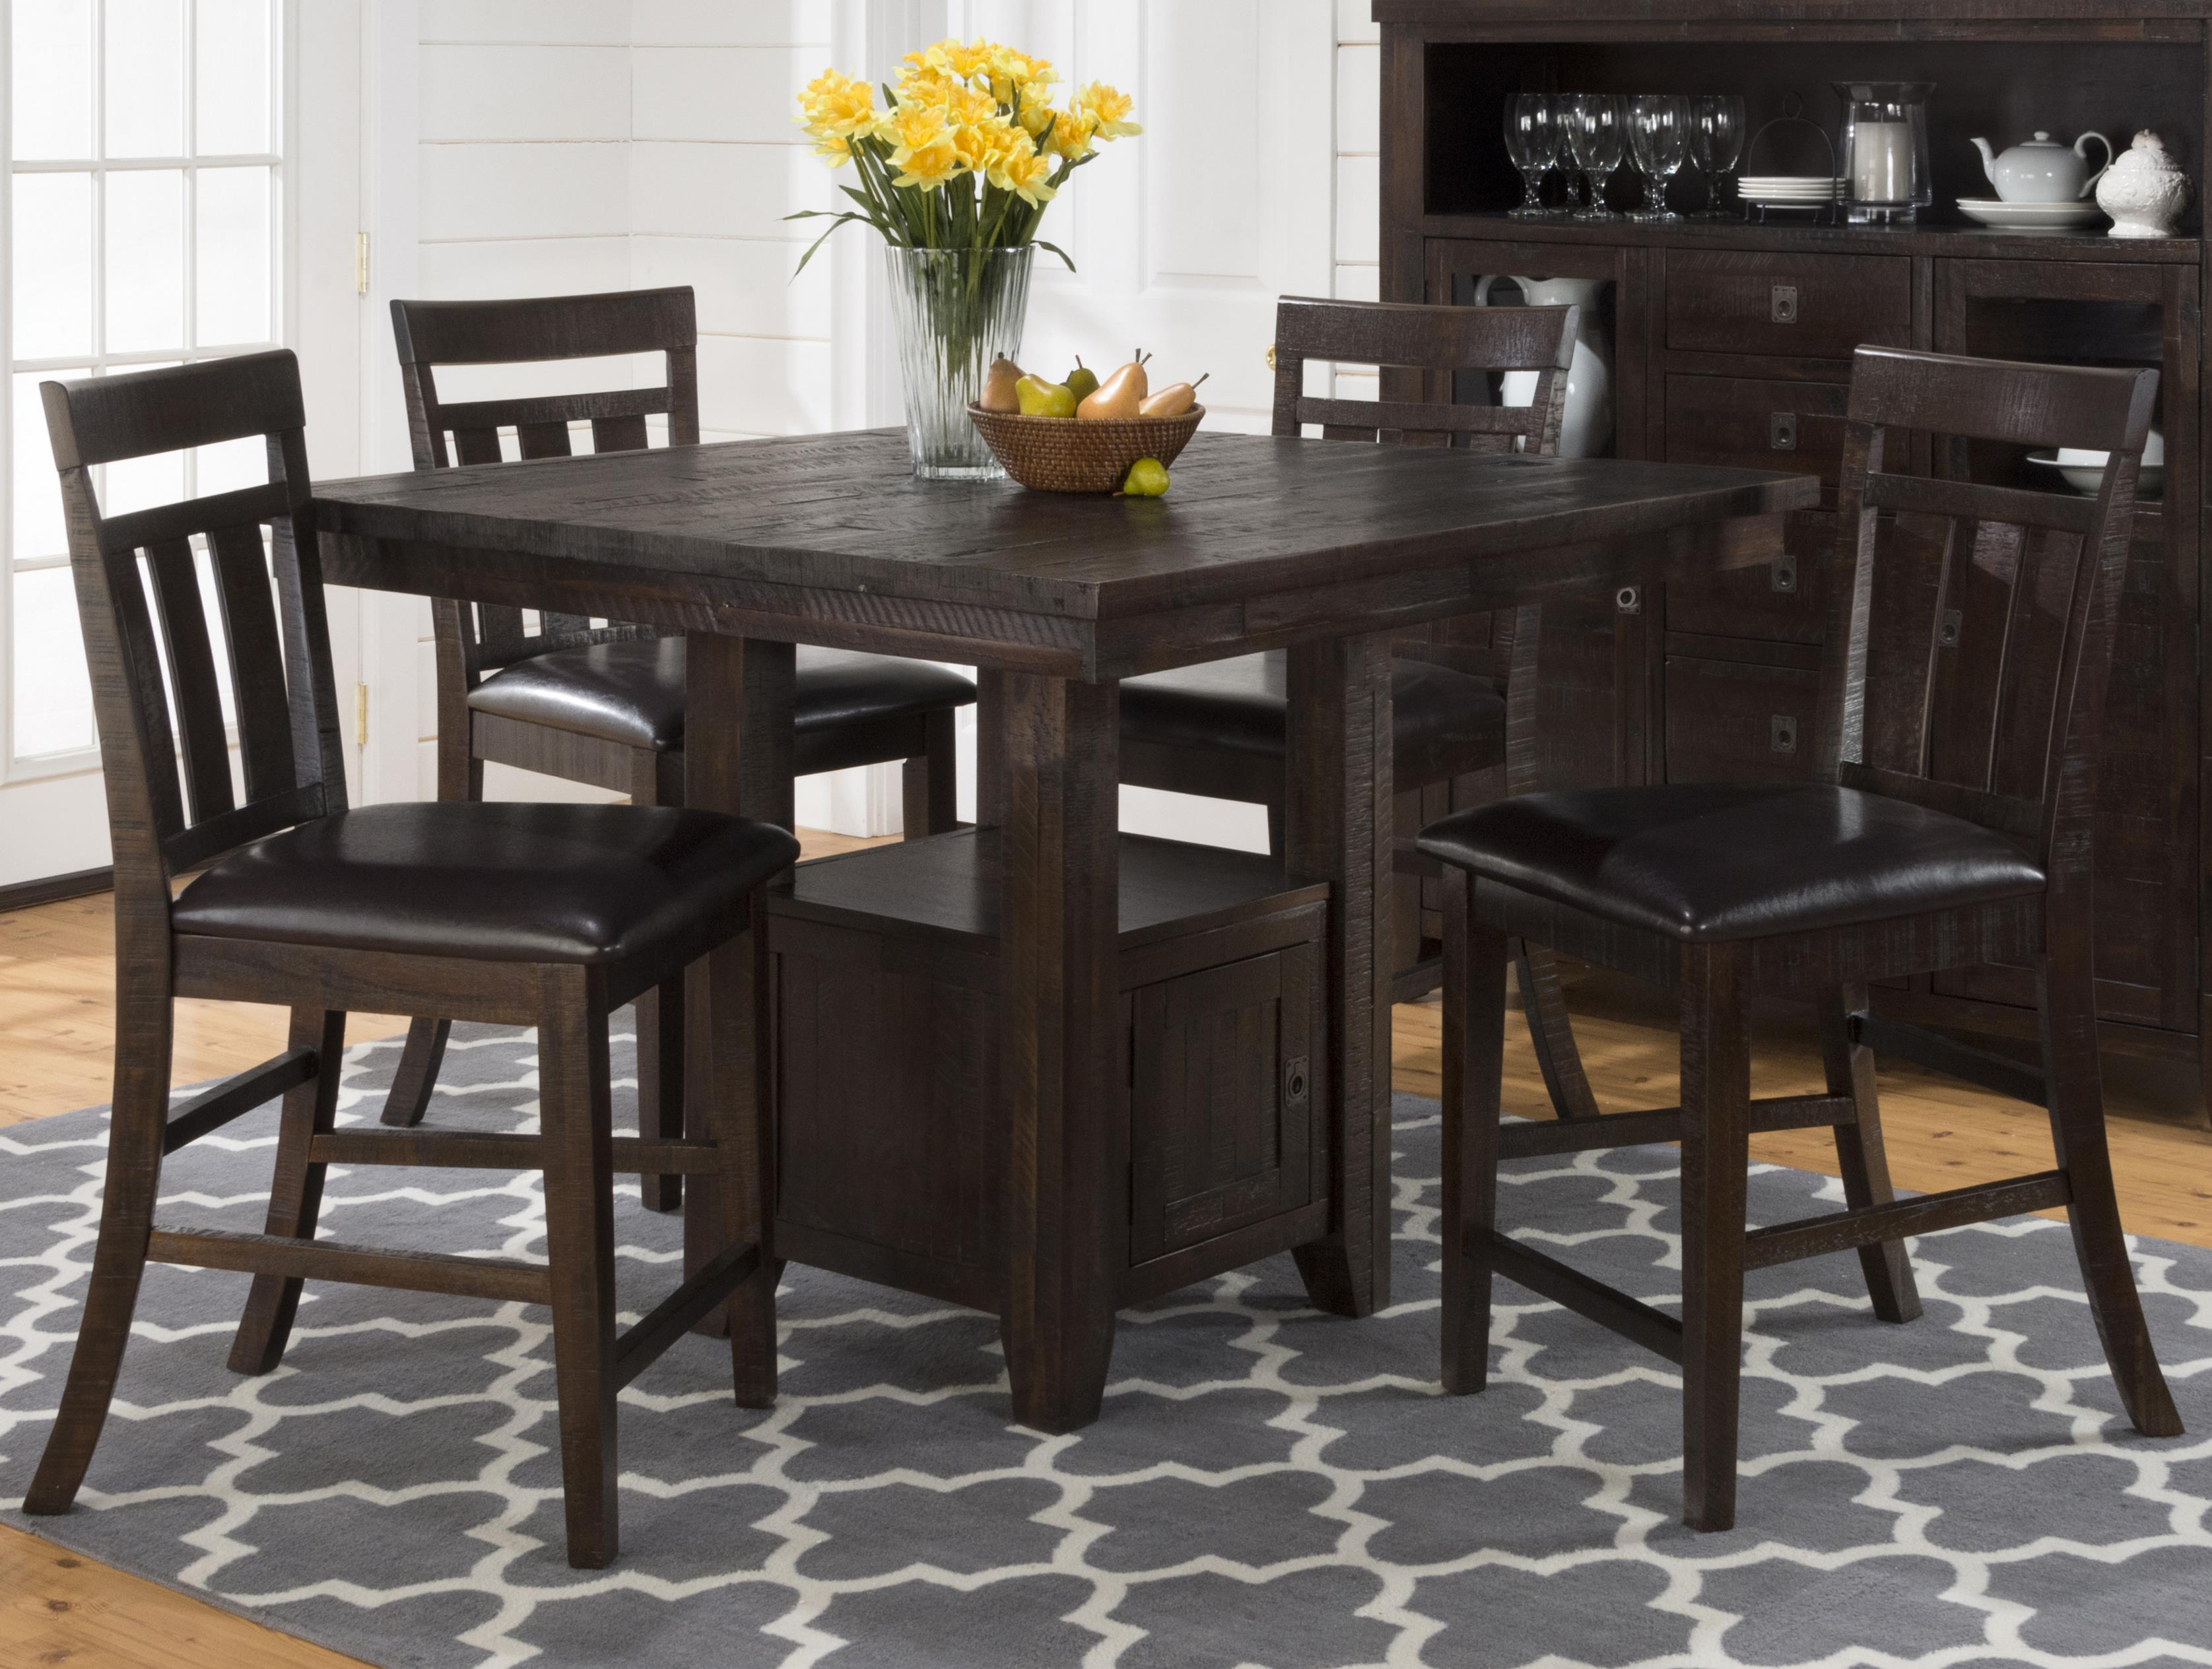 Morris Home Furnishings Kodak Kodak 5-Piece Pub Set - Item Number 705- & Kodak Pub Table with Storage Base and Chairs Set | Morris Home | Pub ...